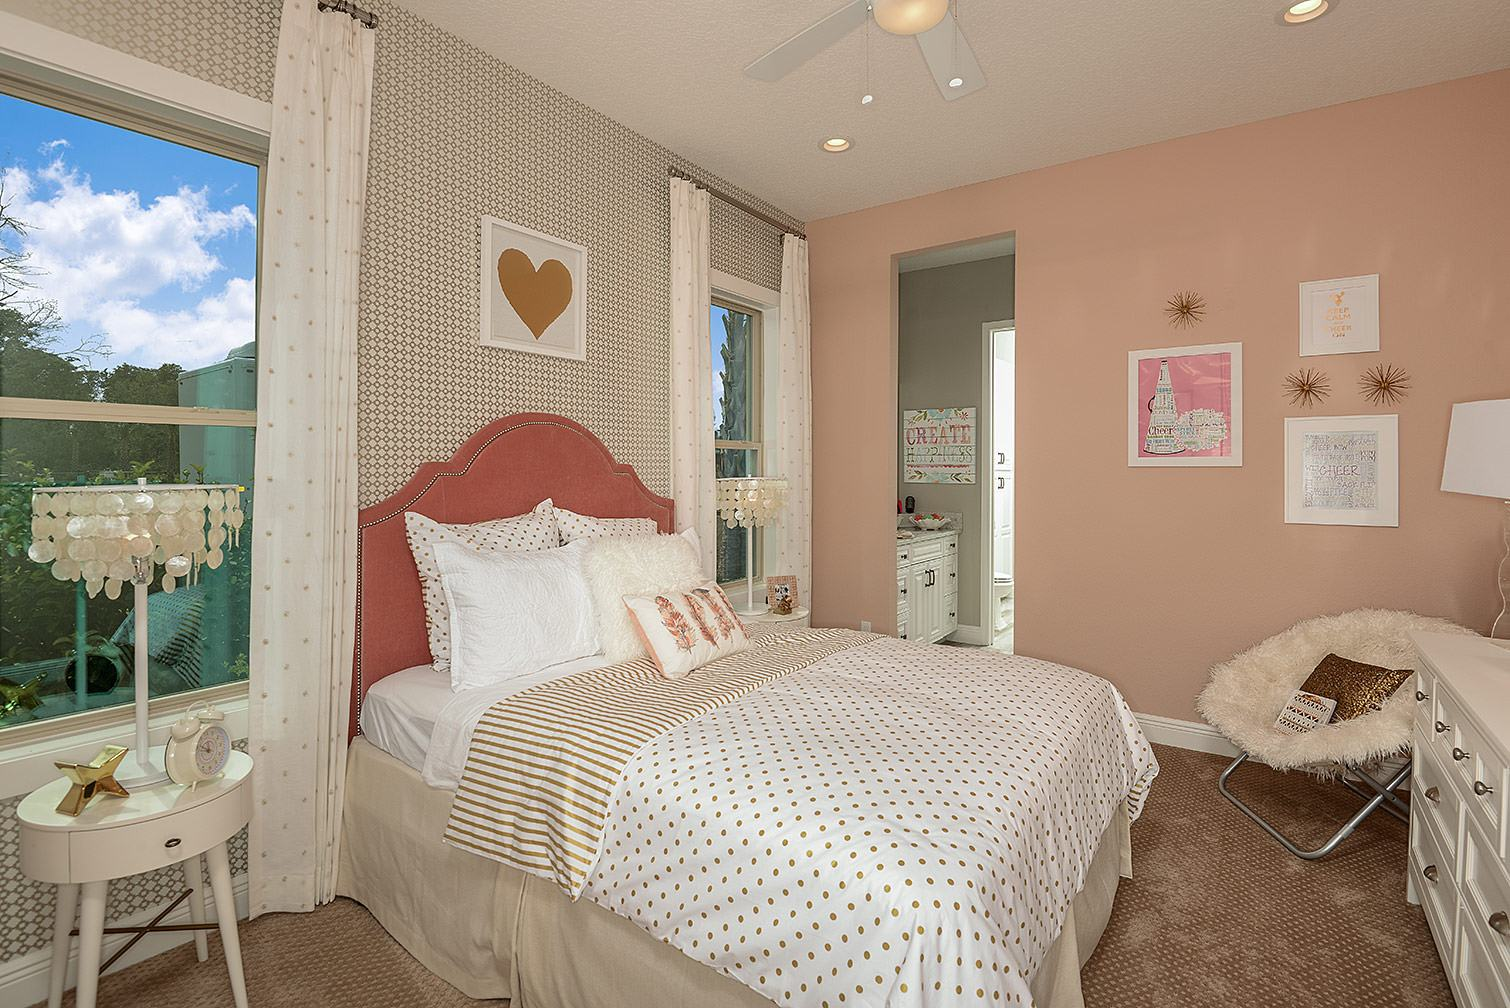 Bedroom featured in the Monte Carlo Plan By Taylor Morrison in Orlando, FL